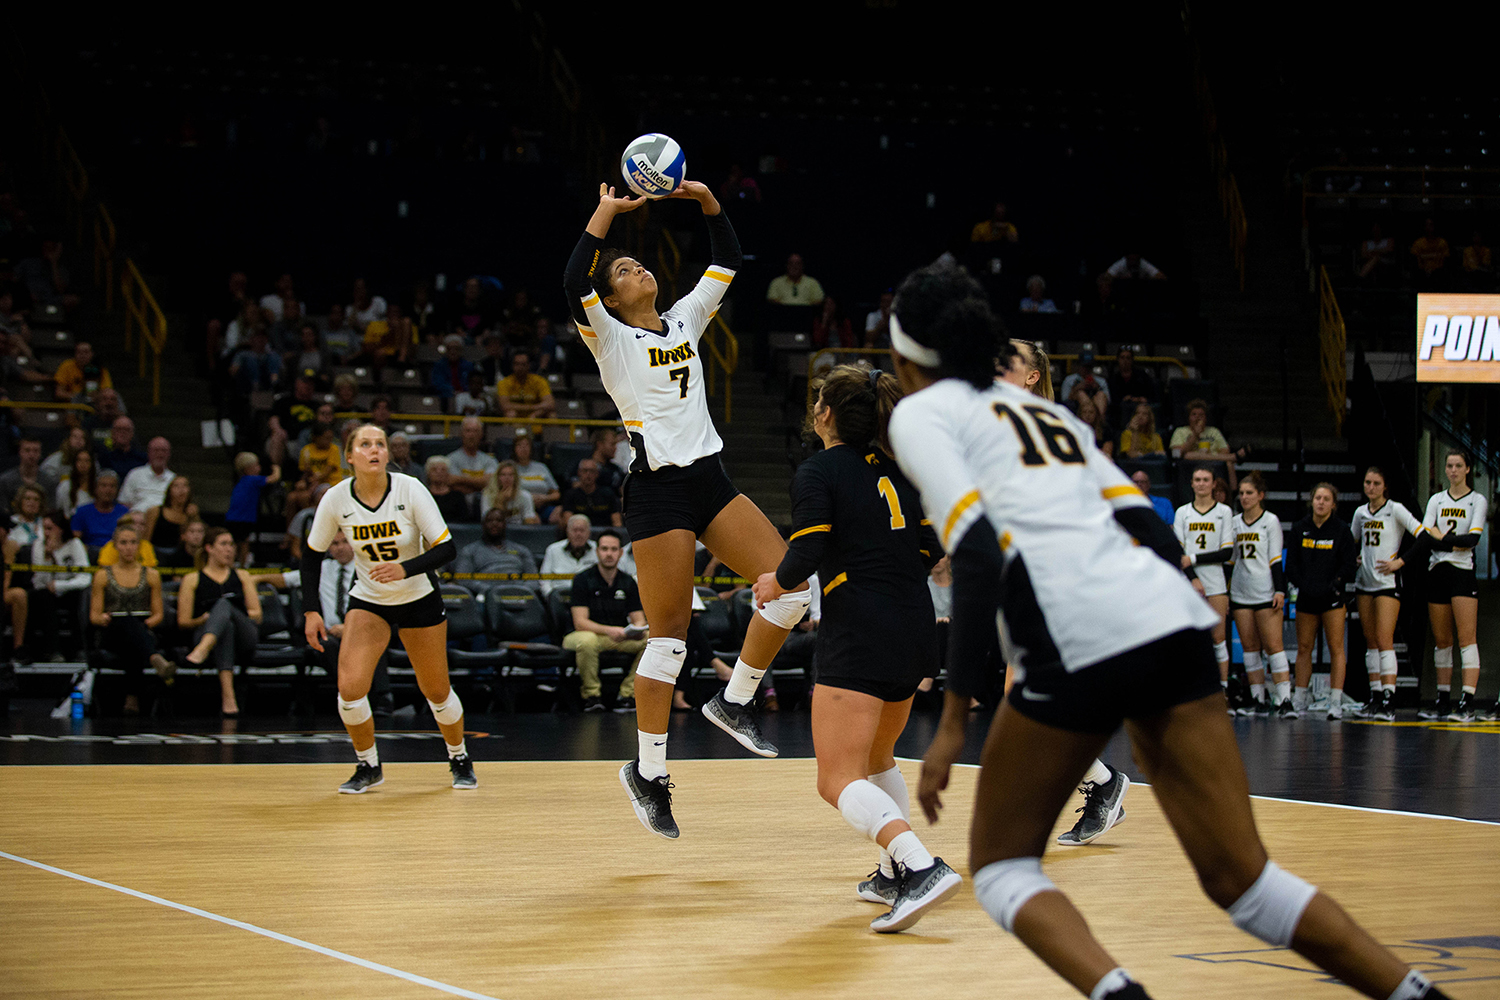 Brie Orr sets the ball during Iowa's match against Eastern Illinois on Sunday, Sept. 9, 2018 at Carver-Hawkeye Arena. The Hawkeyes won the match 3-0.